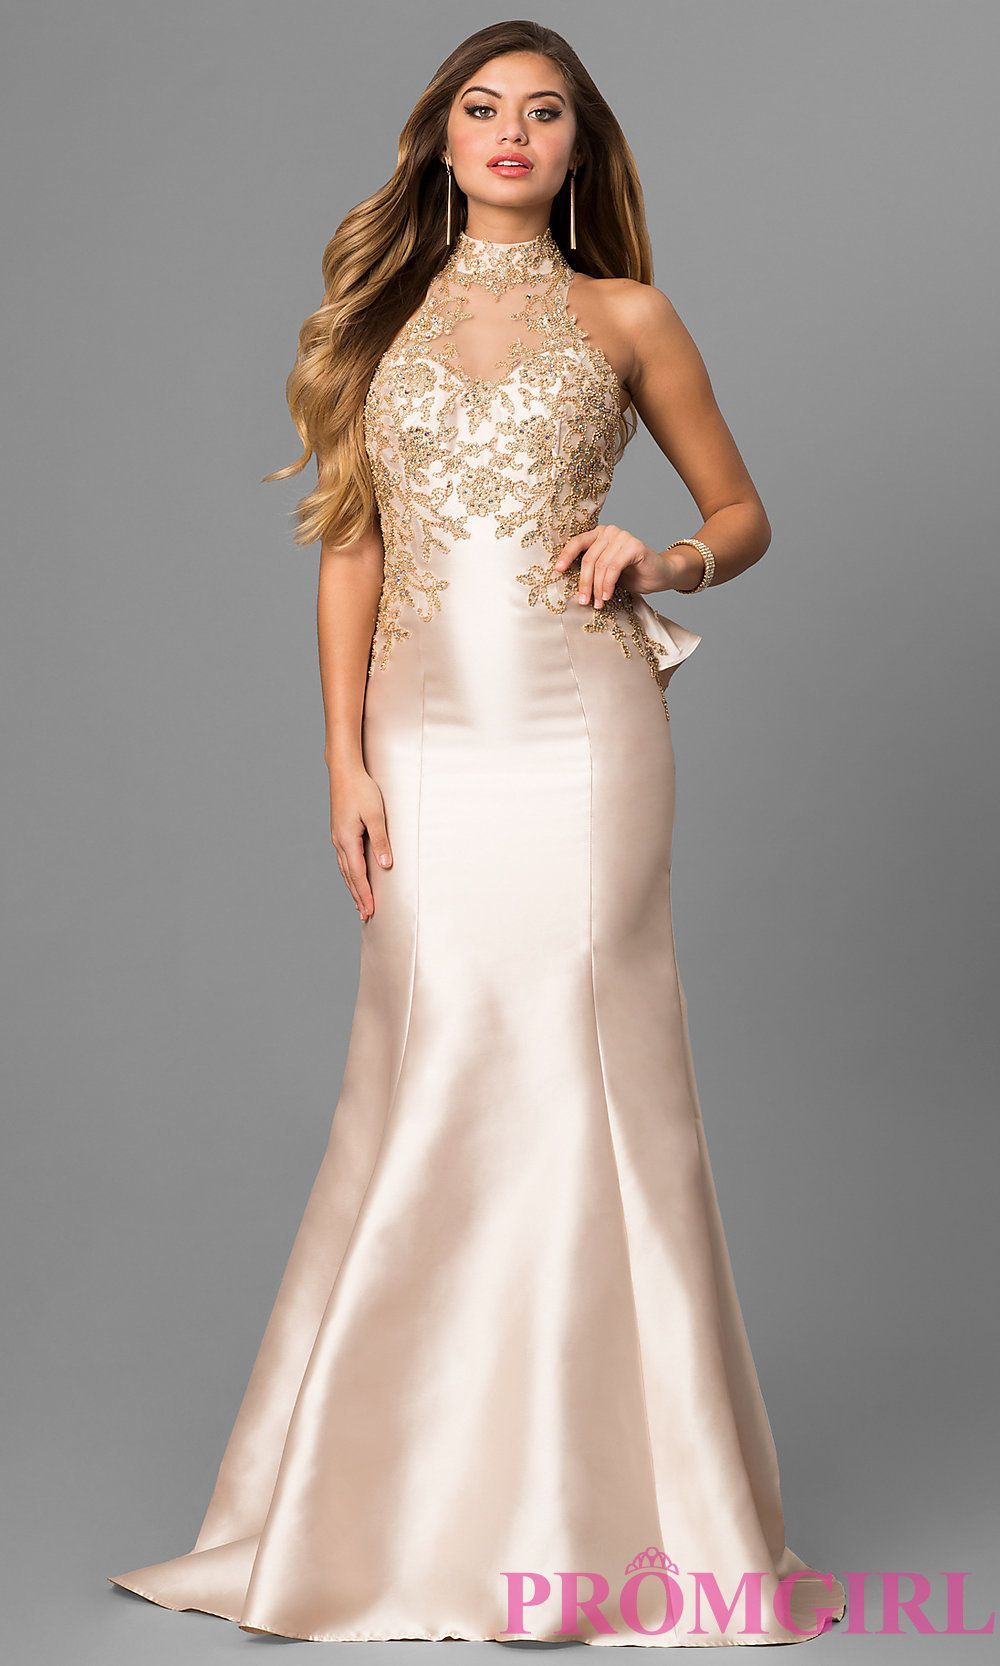 I like style fbgl from promgirl do you like prom